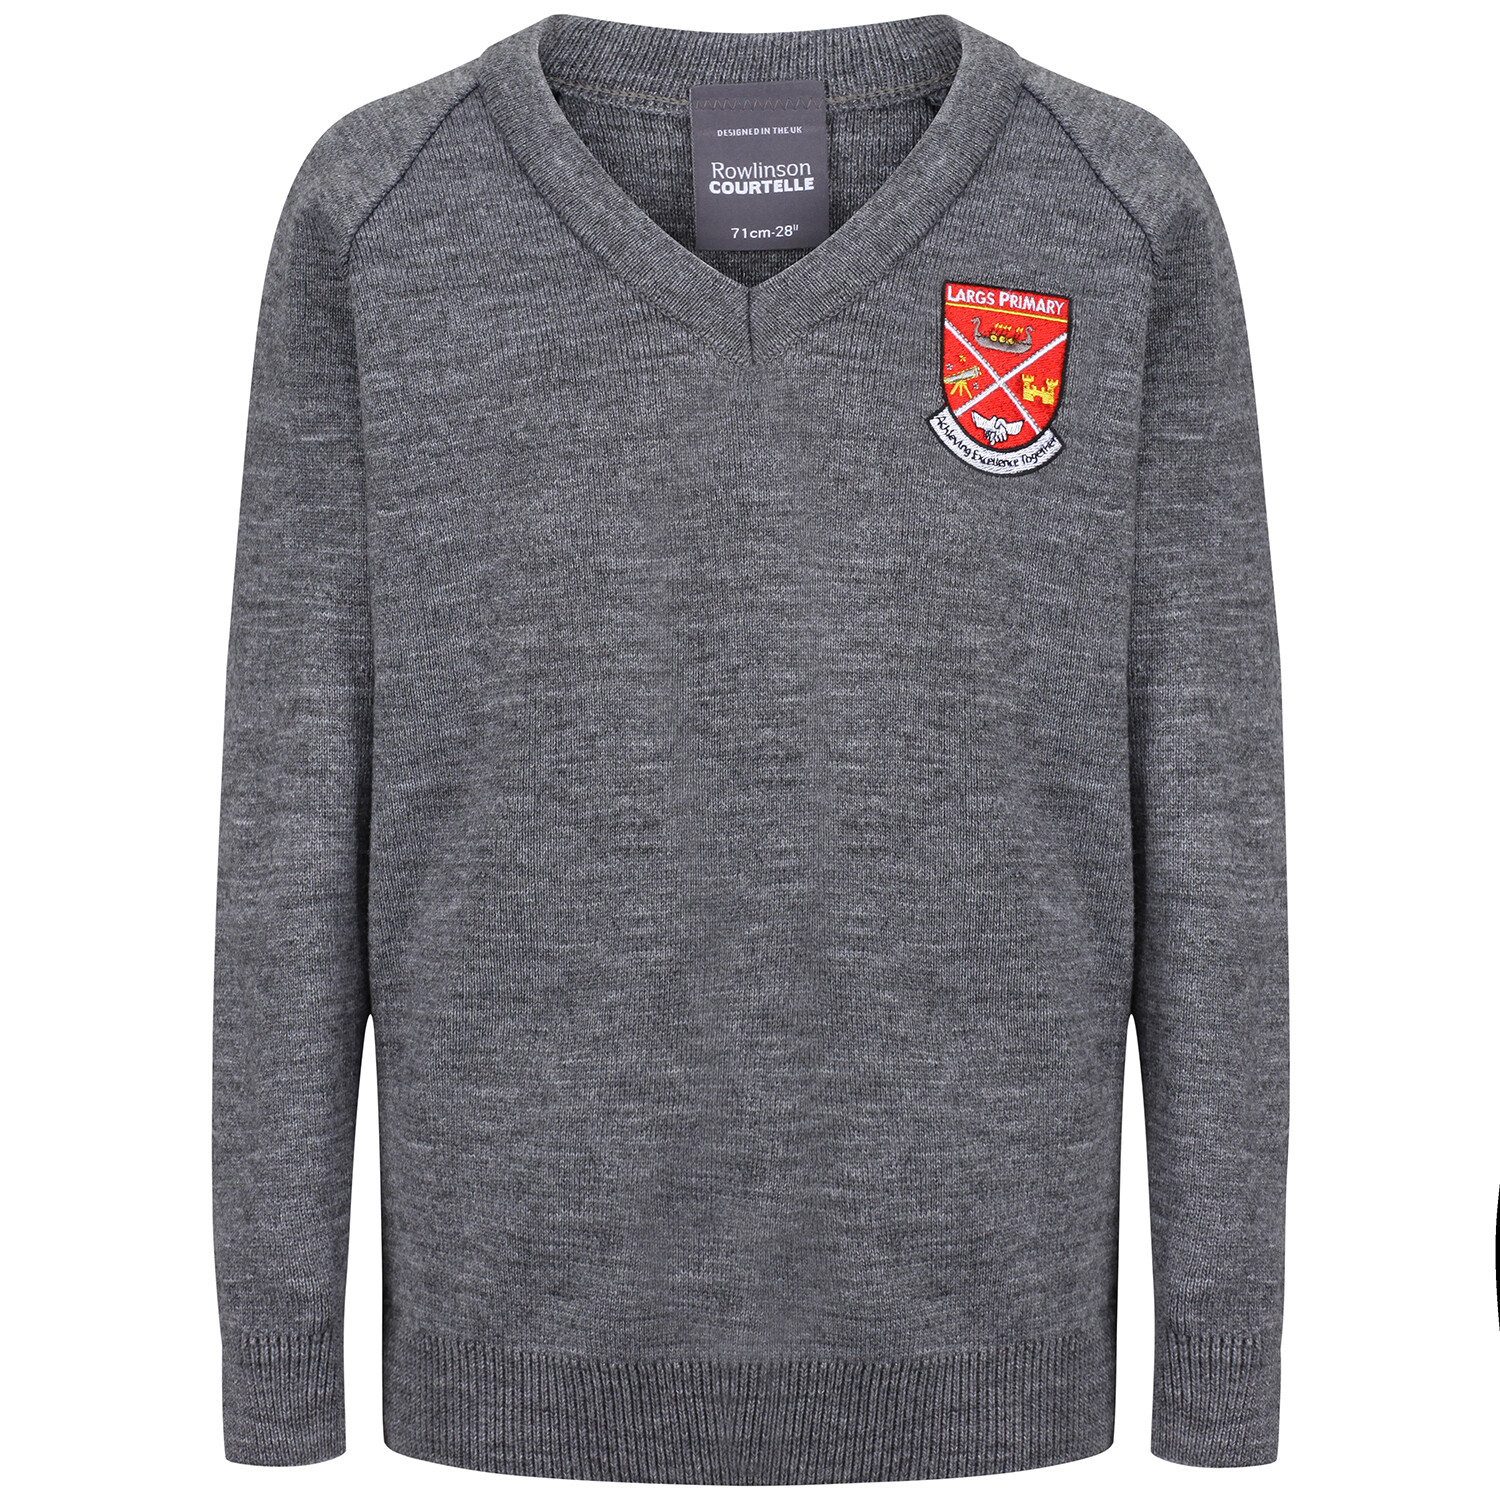 Largs Primary Knitted V-neck (choice of colour)